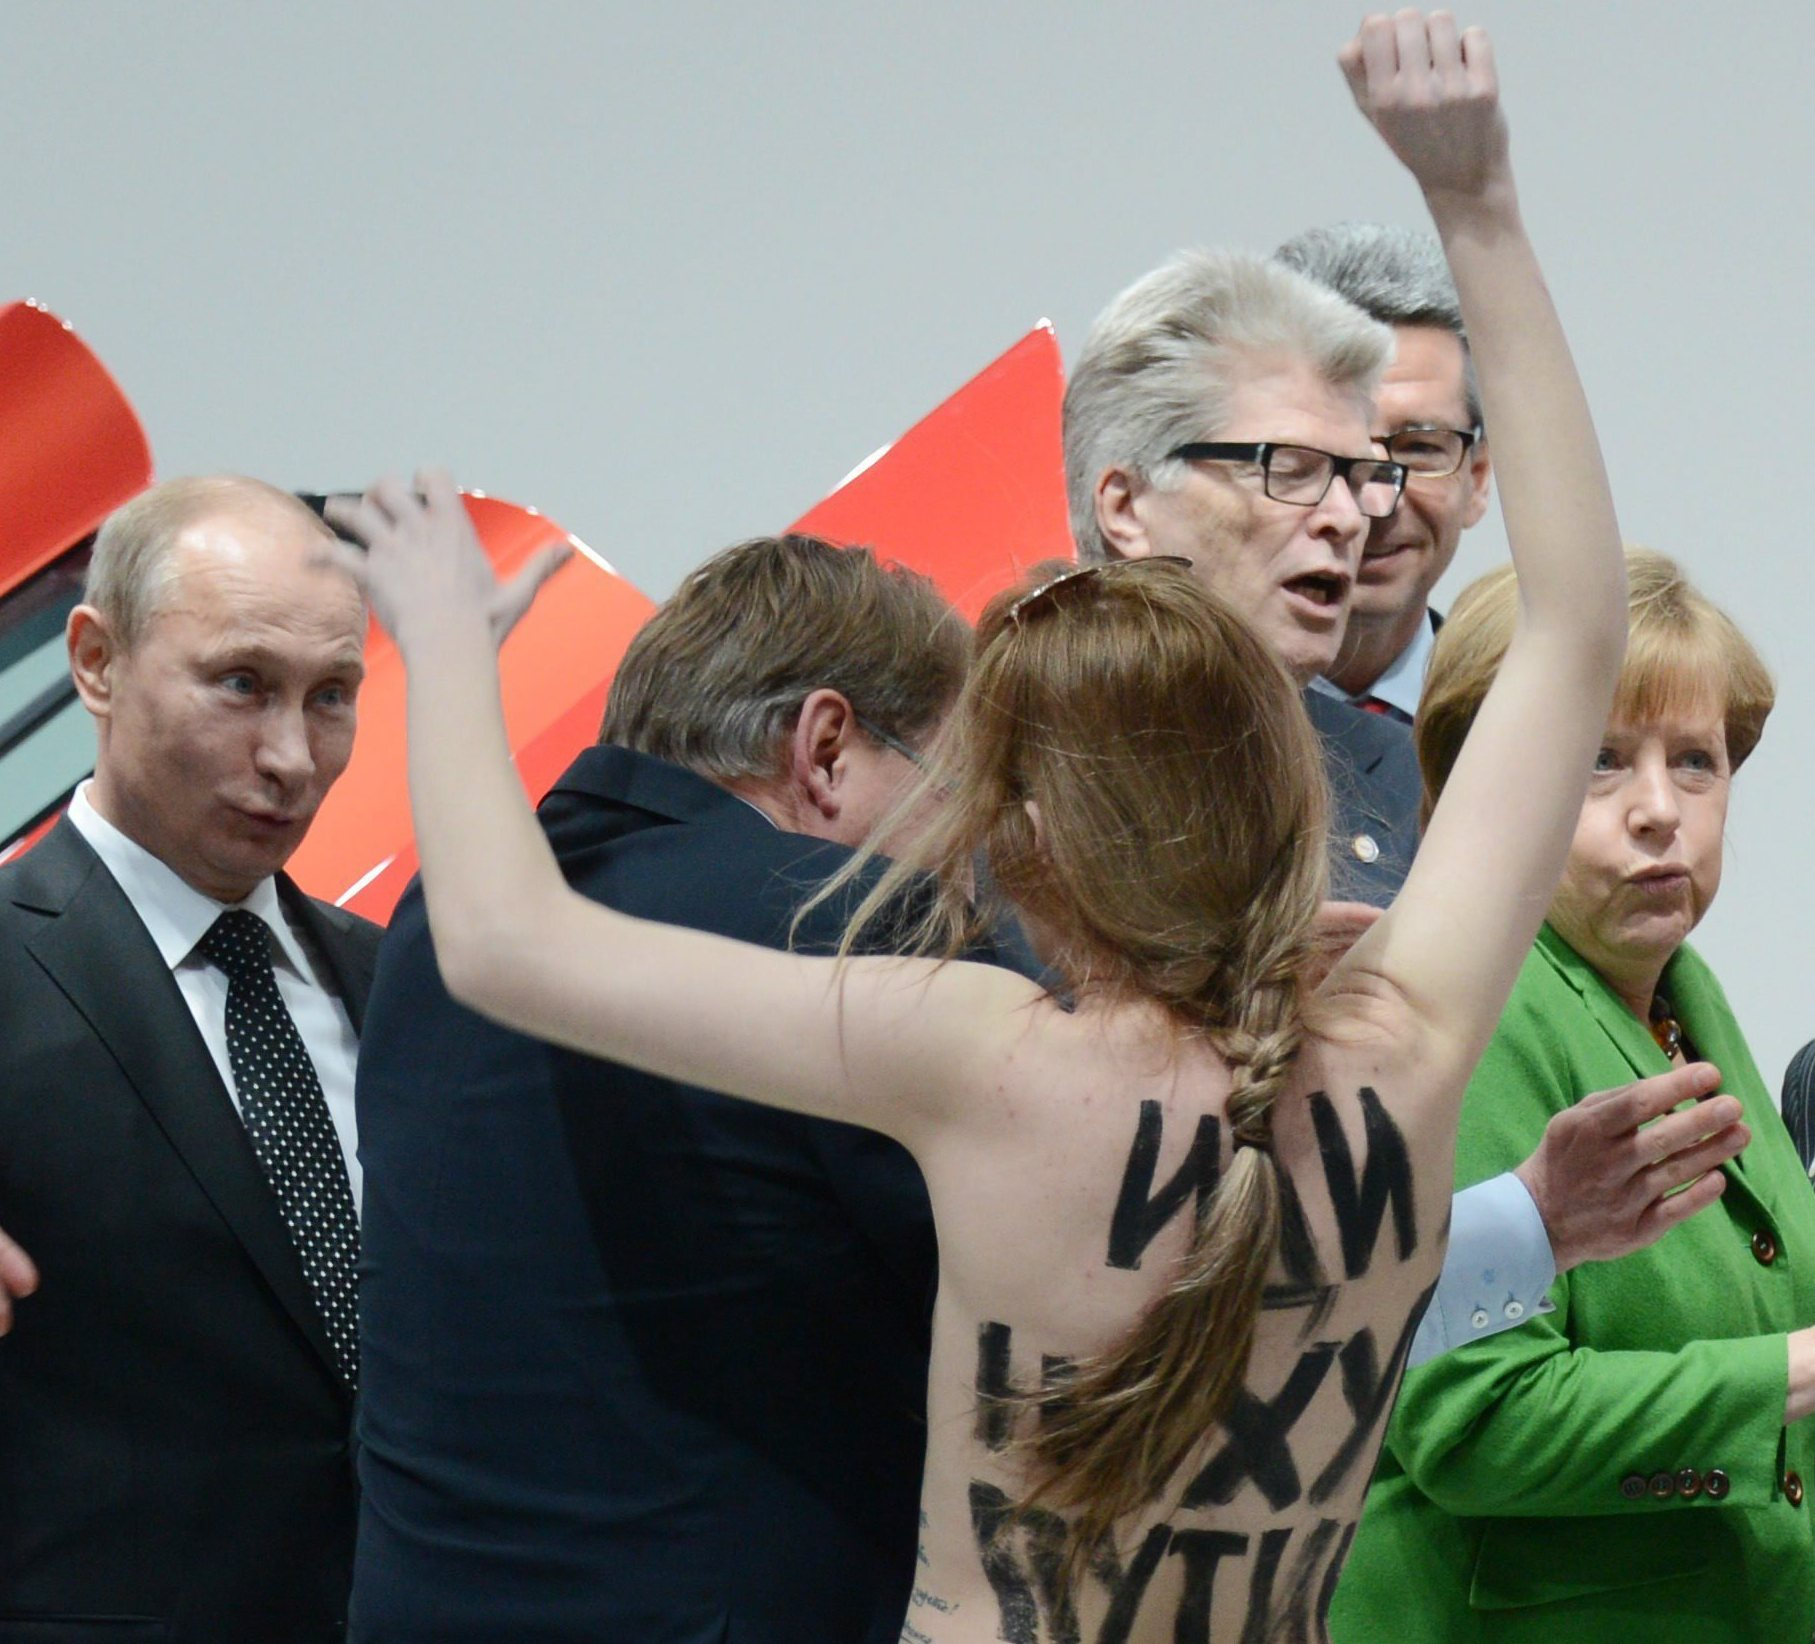 'I Liked It,' Putin Says Of Protest By Topless Women